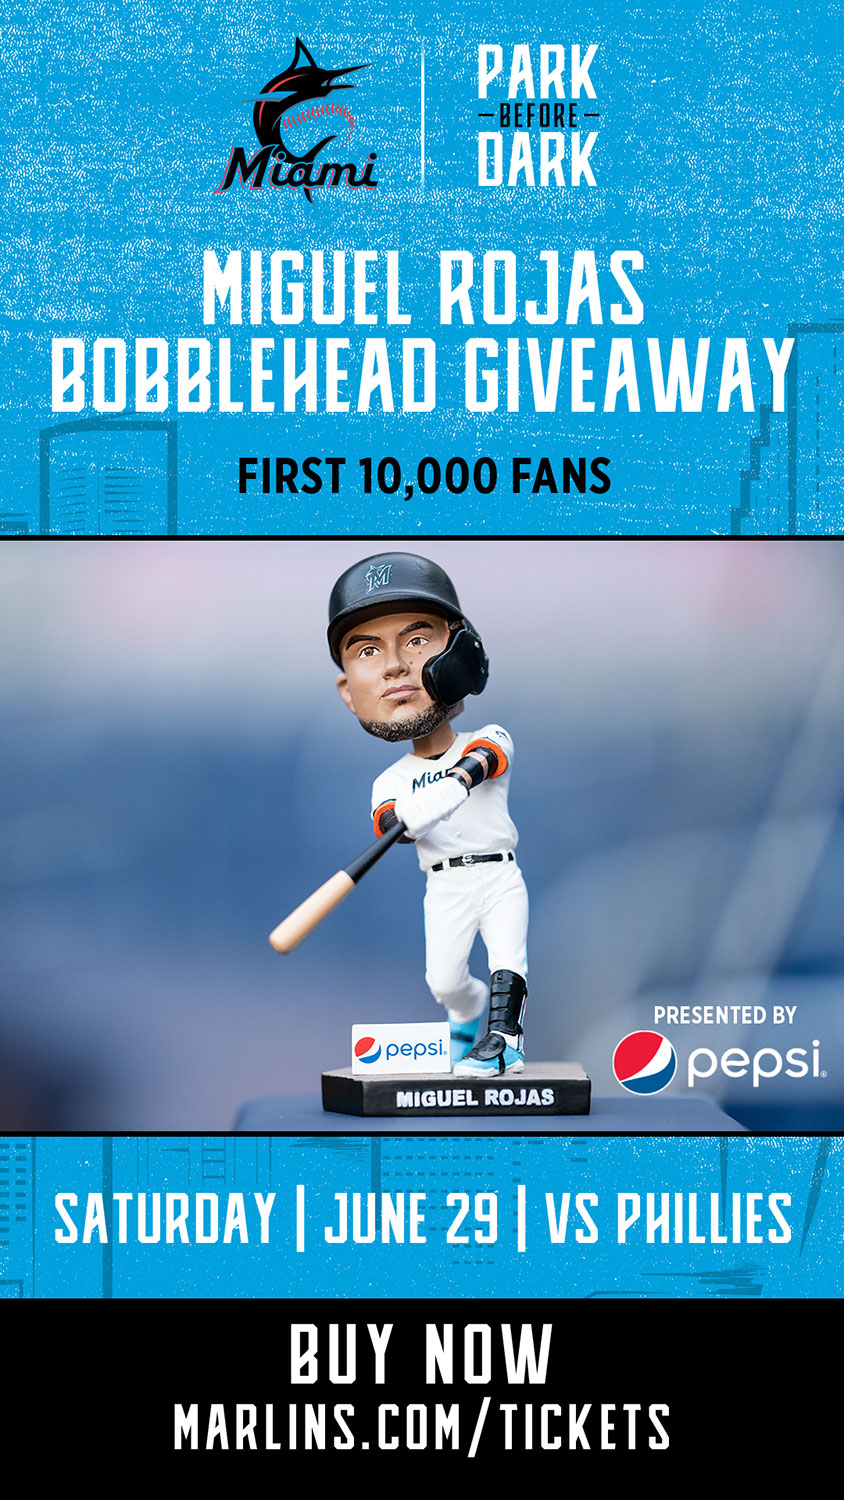 GPE008_Giveaways_MiguelRojas_BobbleHead_FINAL_060519.jpg